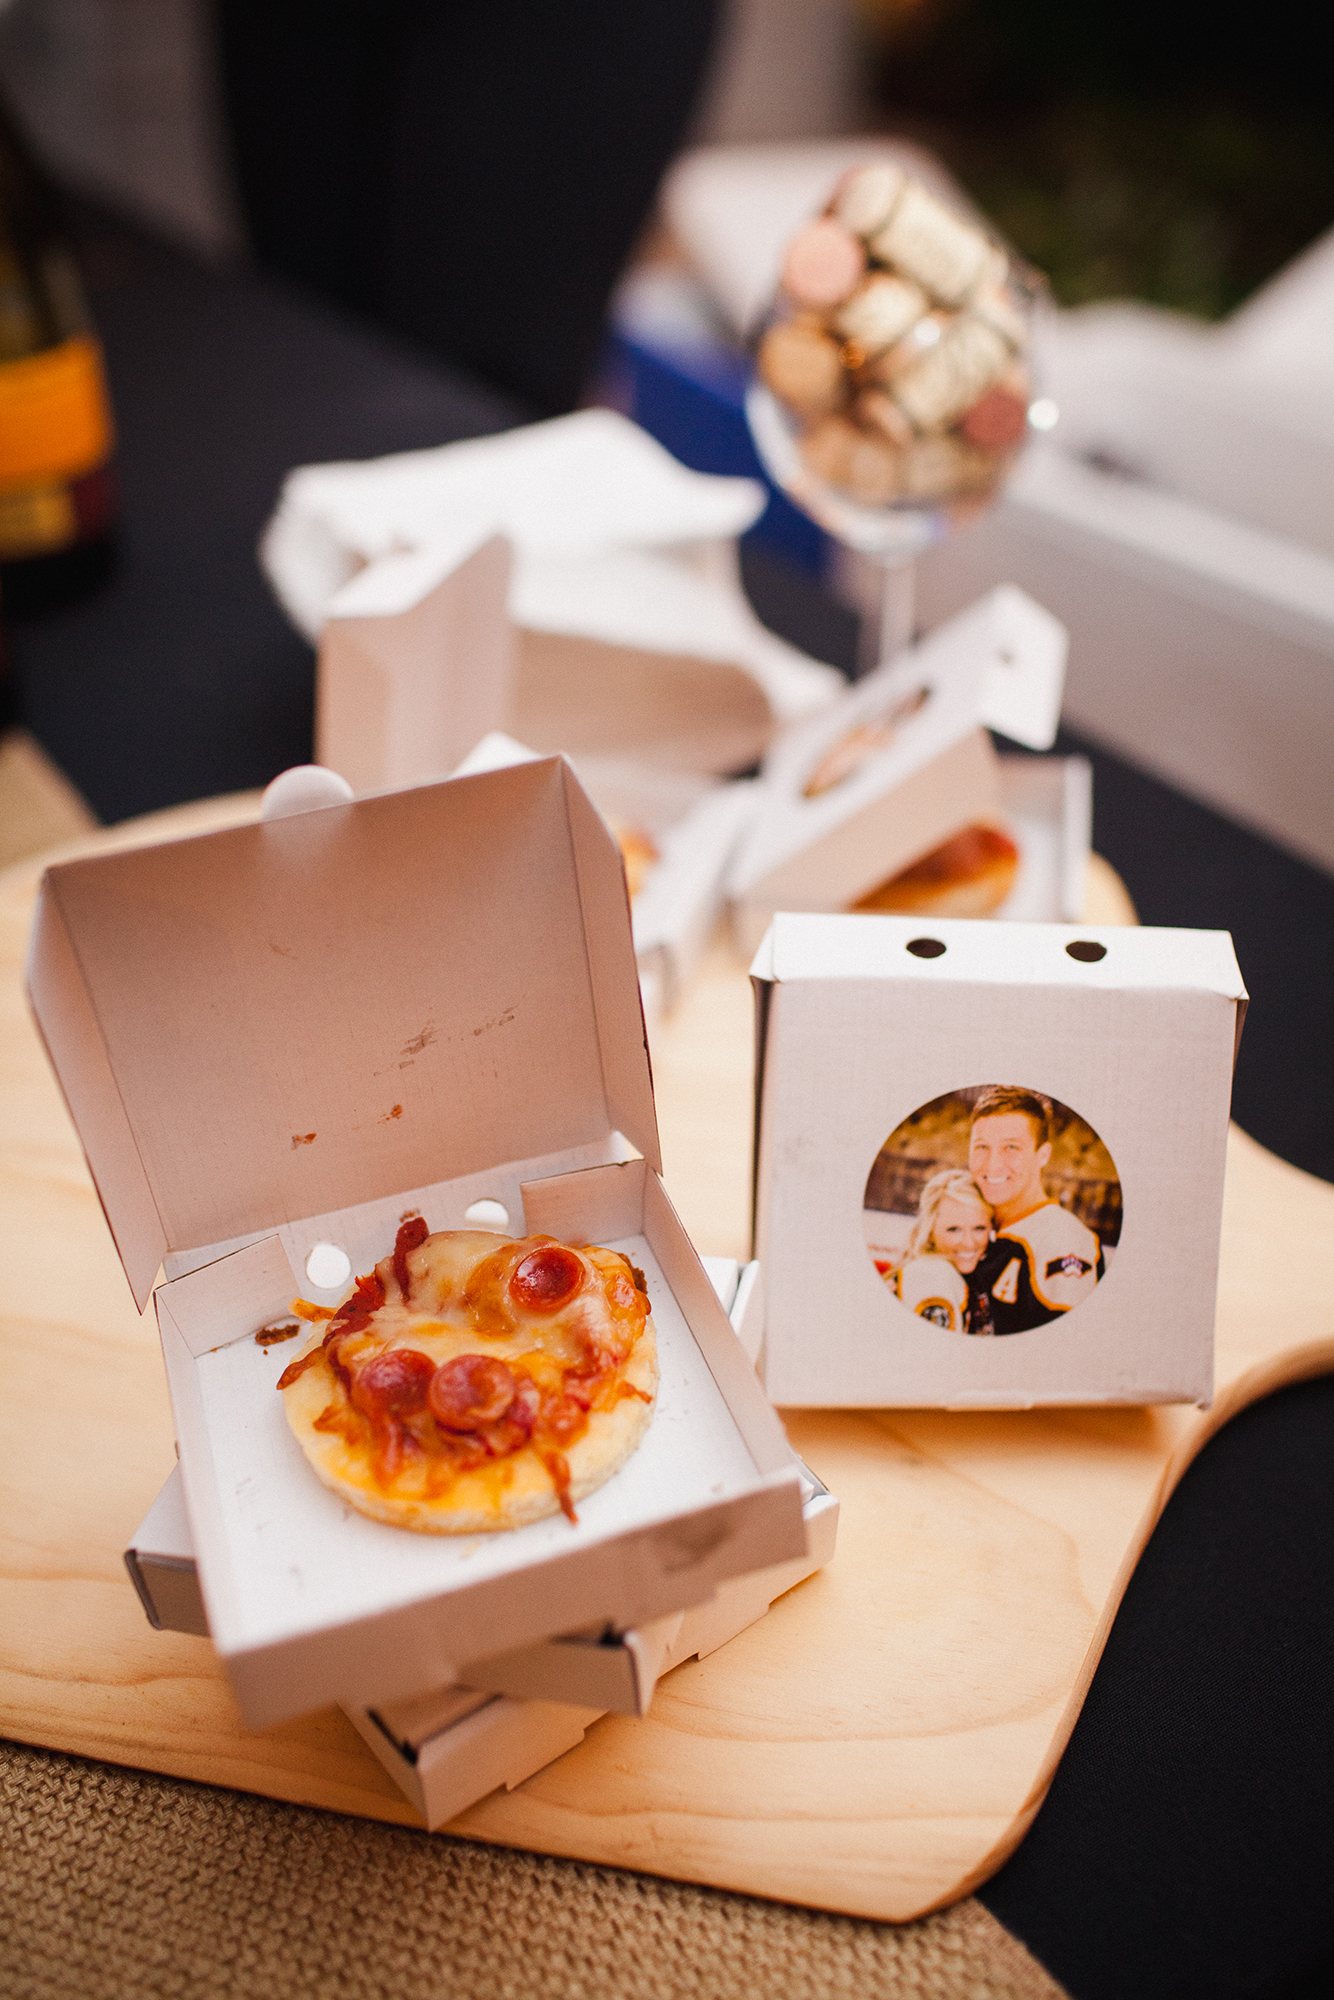 Serving pizza bites in mini pizza boxes that feature your faces on them, like these created by Bradford Catered Events, is a creative favor idea that will gain you major originality points.